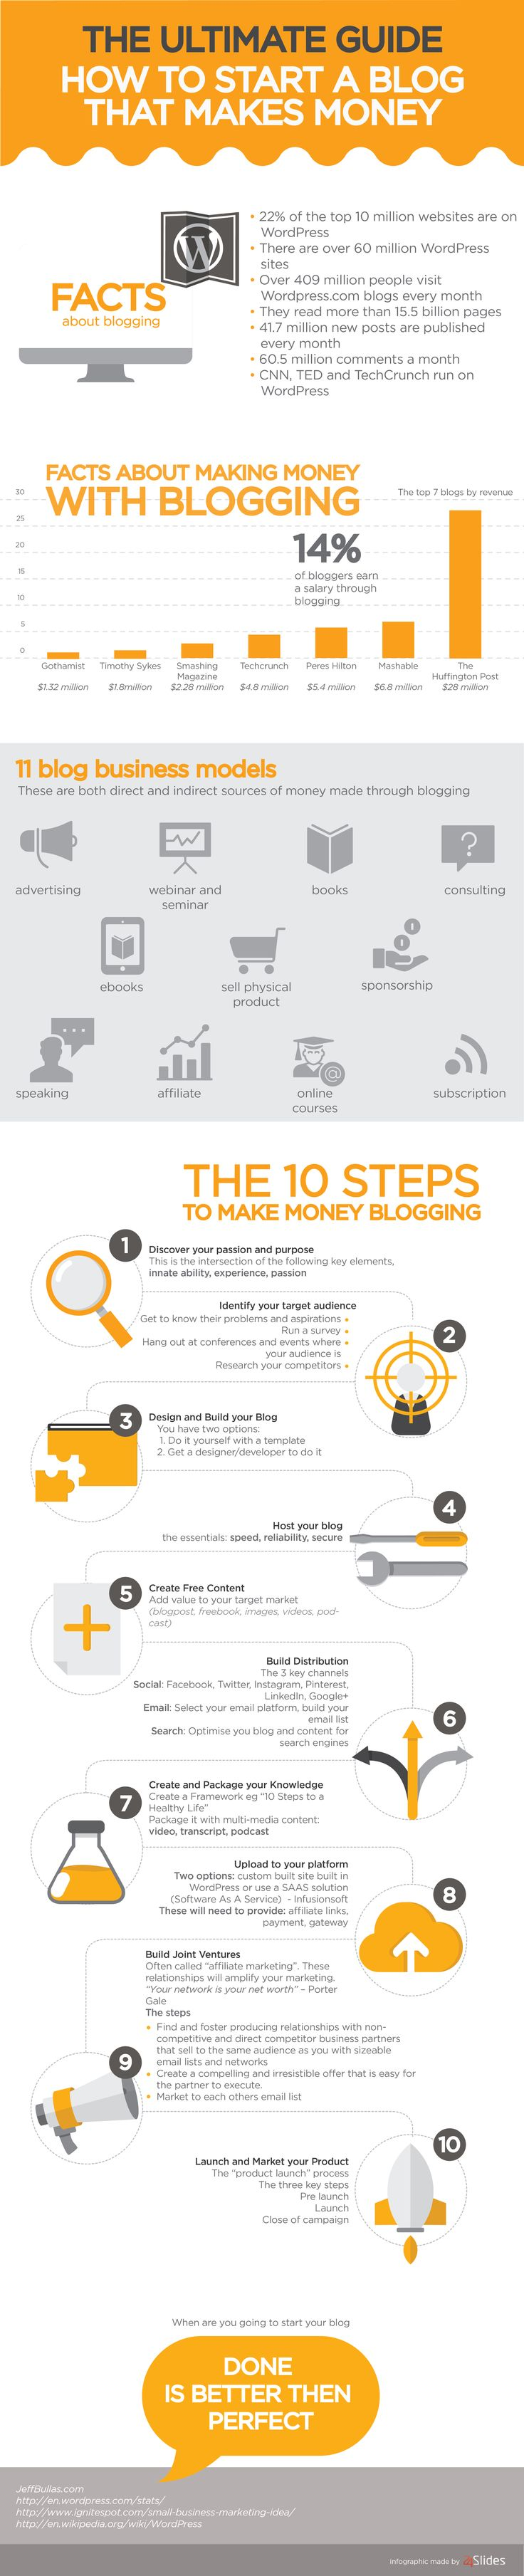 How to start a blog that makes money.